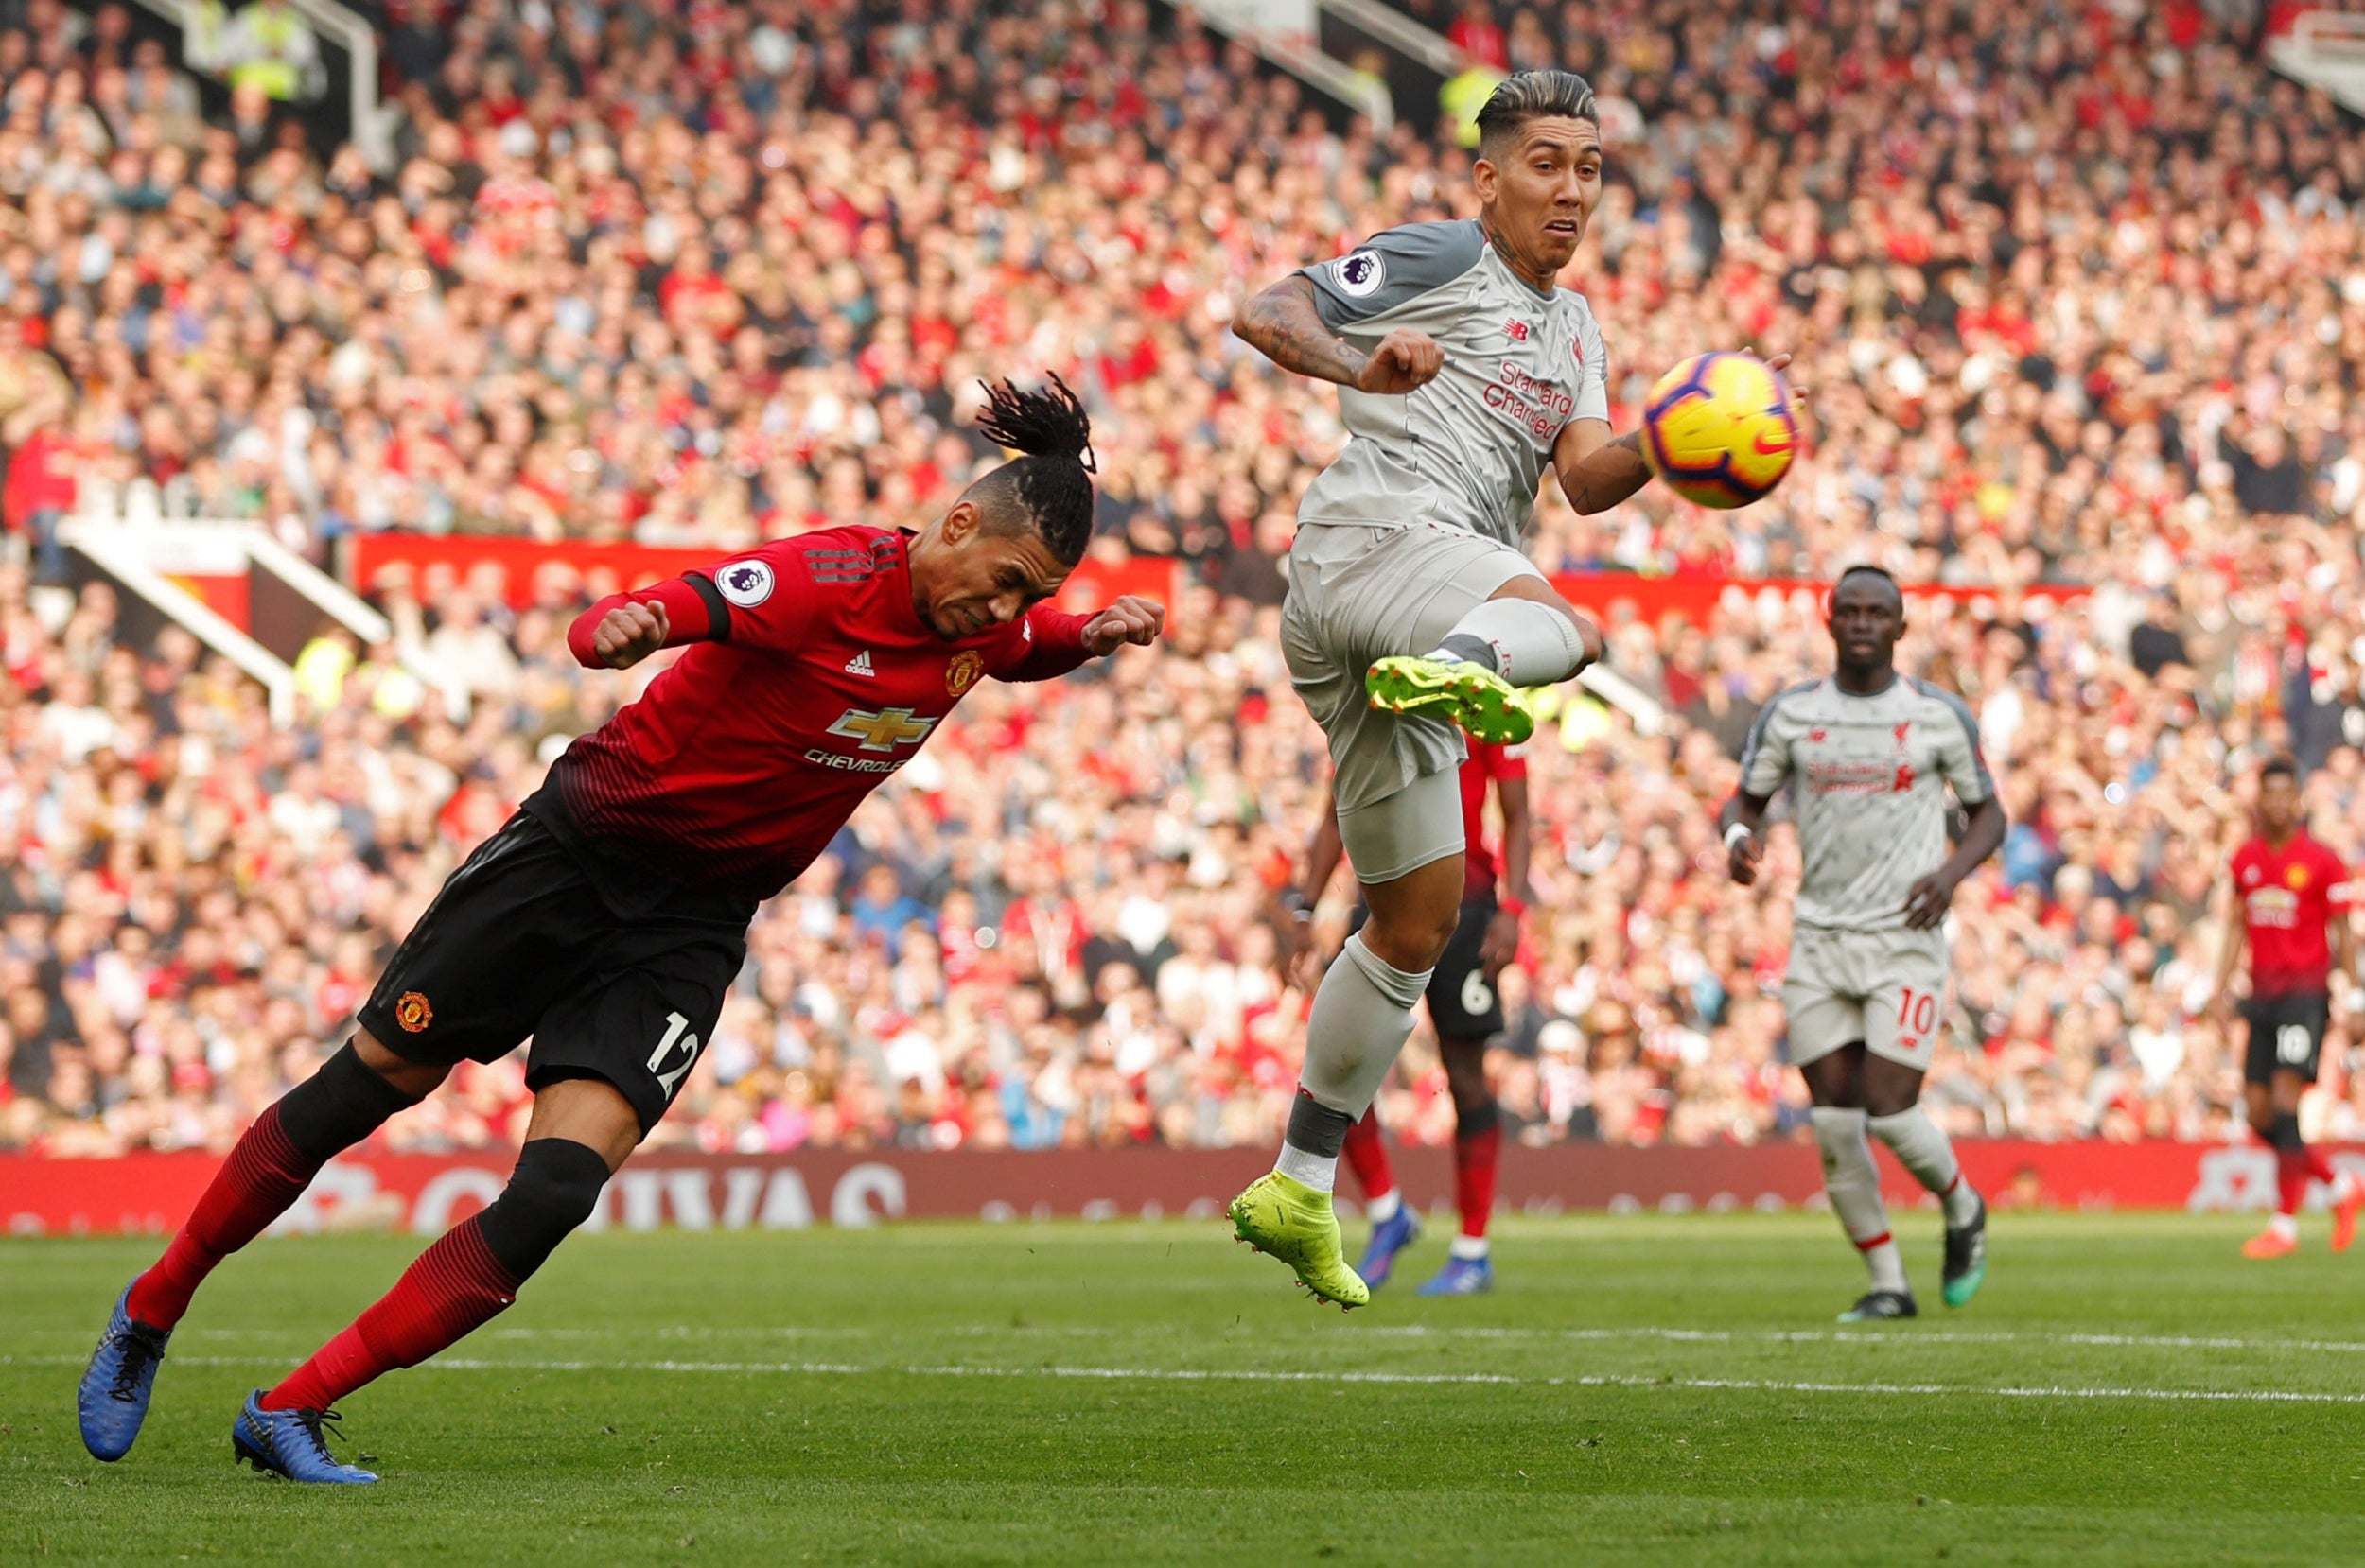 Manchester United Vs Liverpool Ole Gunnar Solskjaer Delighted With